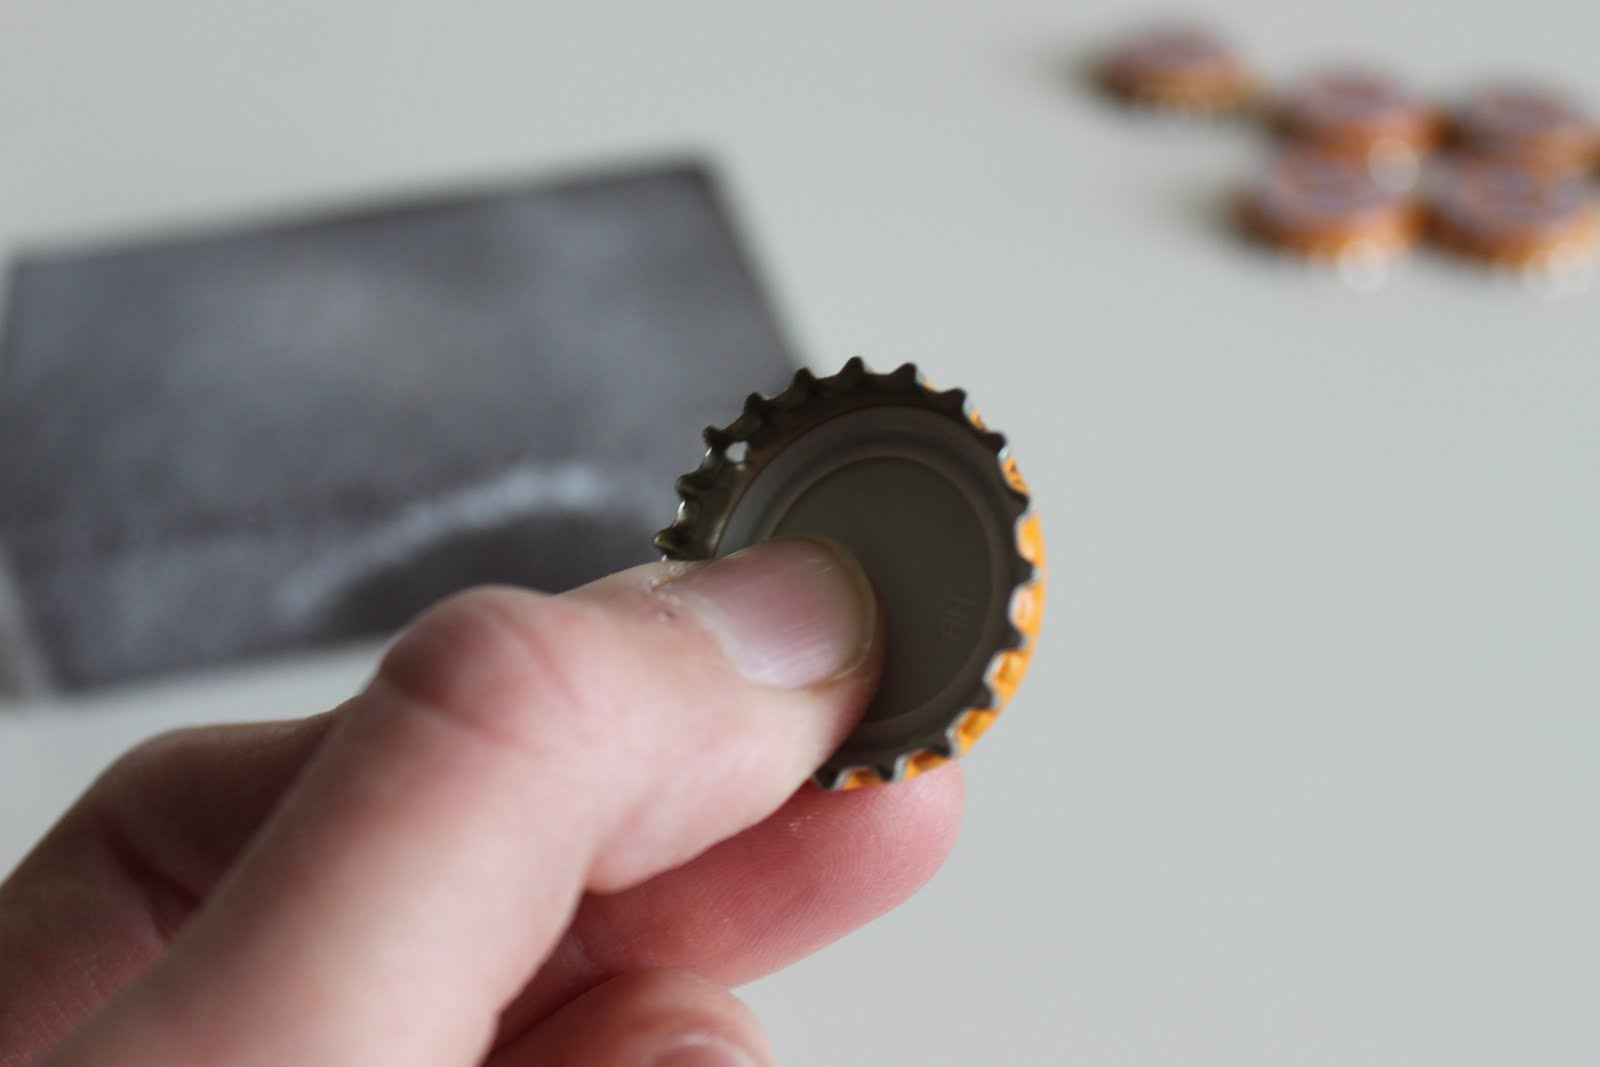 how to cut a hole in a bottle cap